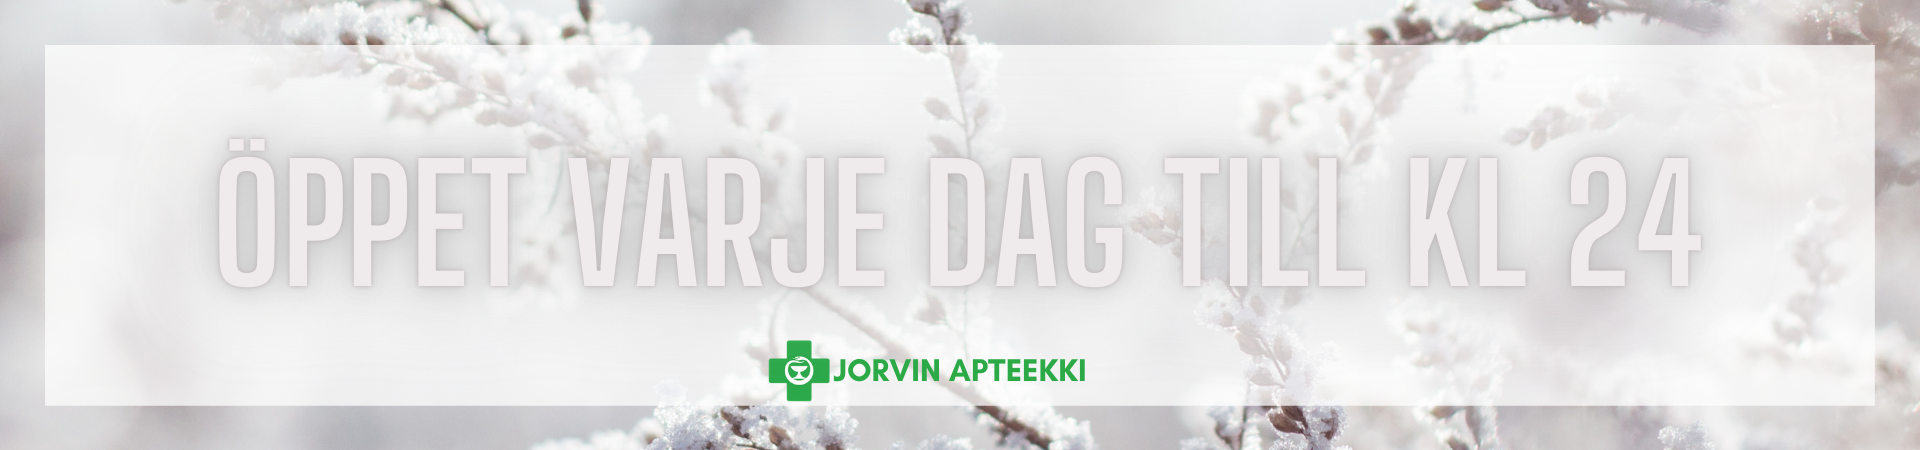 Jorvin Apteekki